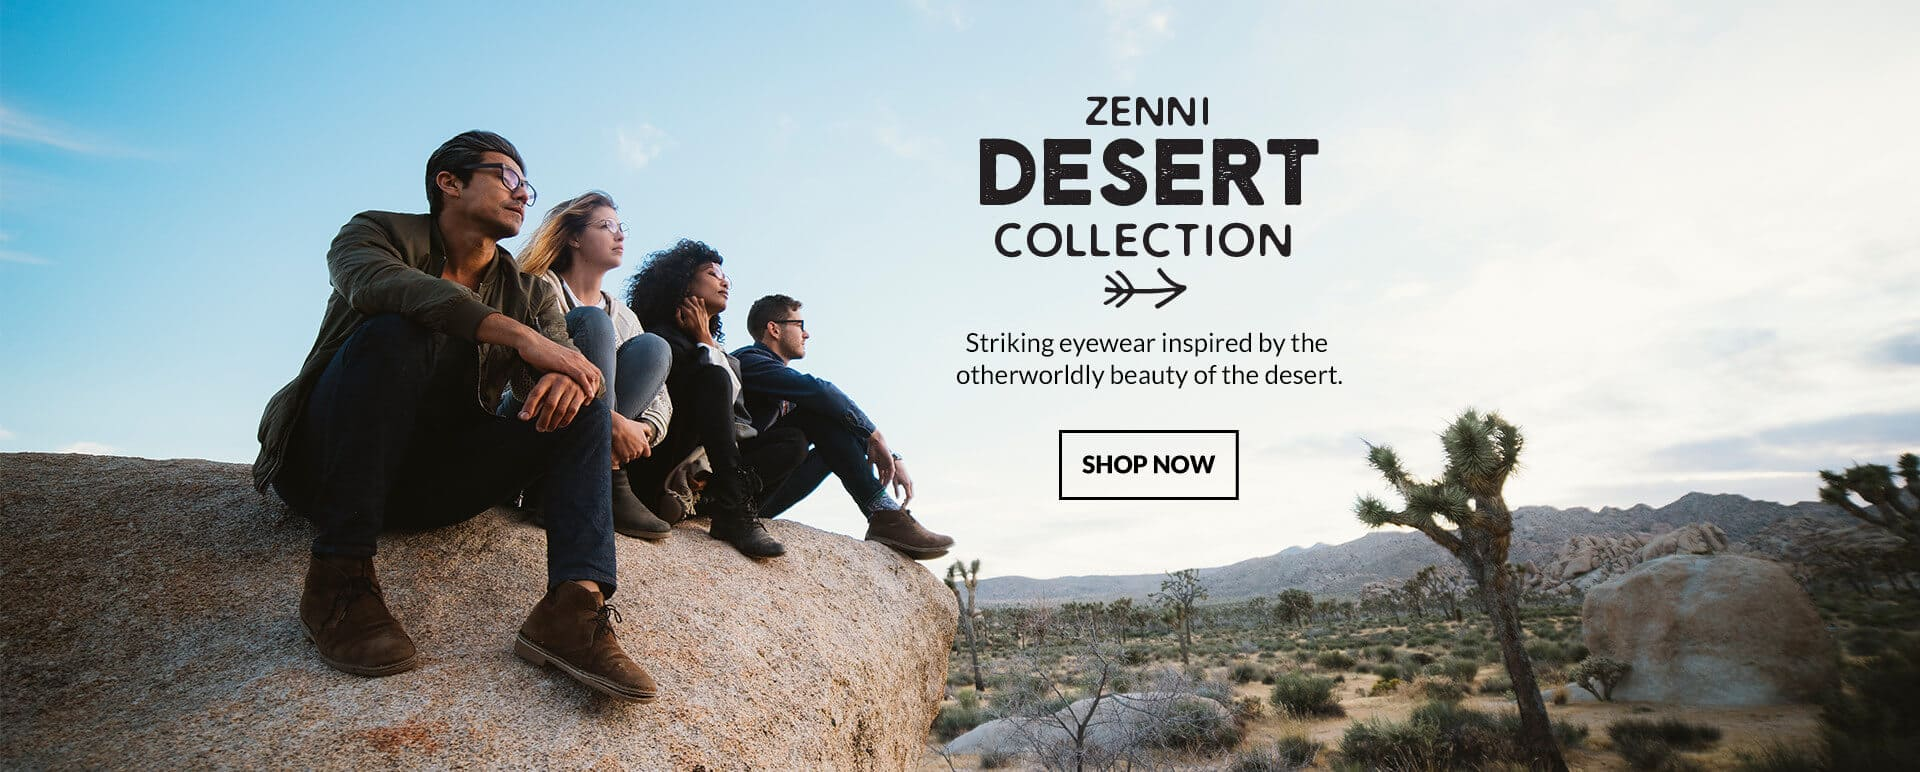 Desert Collection | Zenni Optical